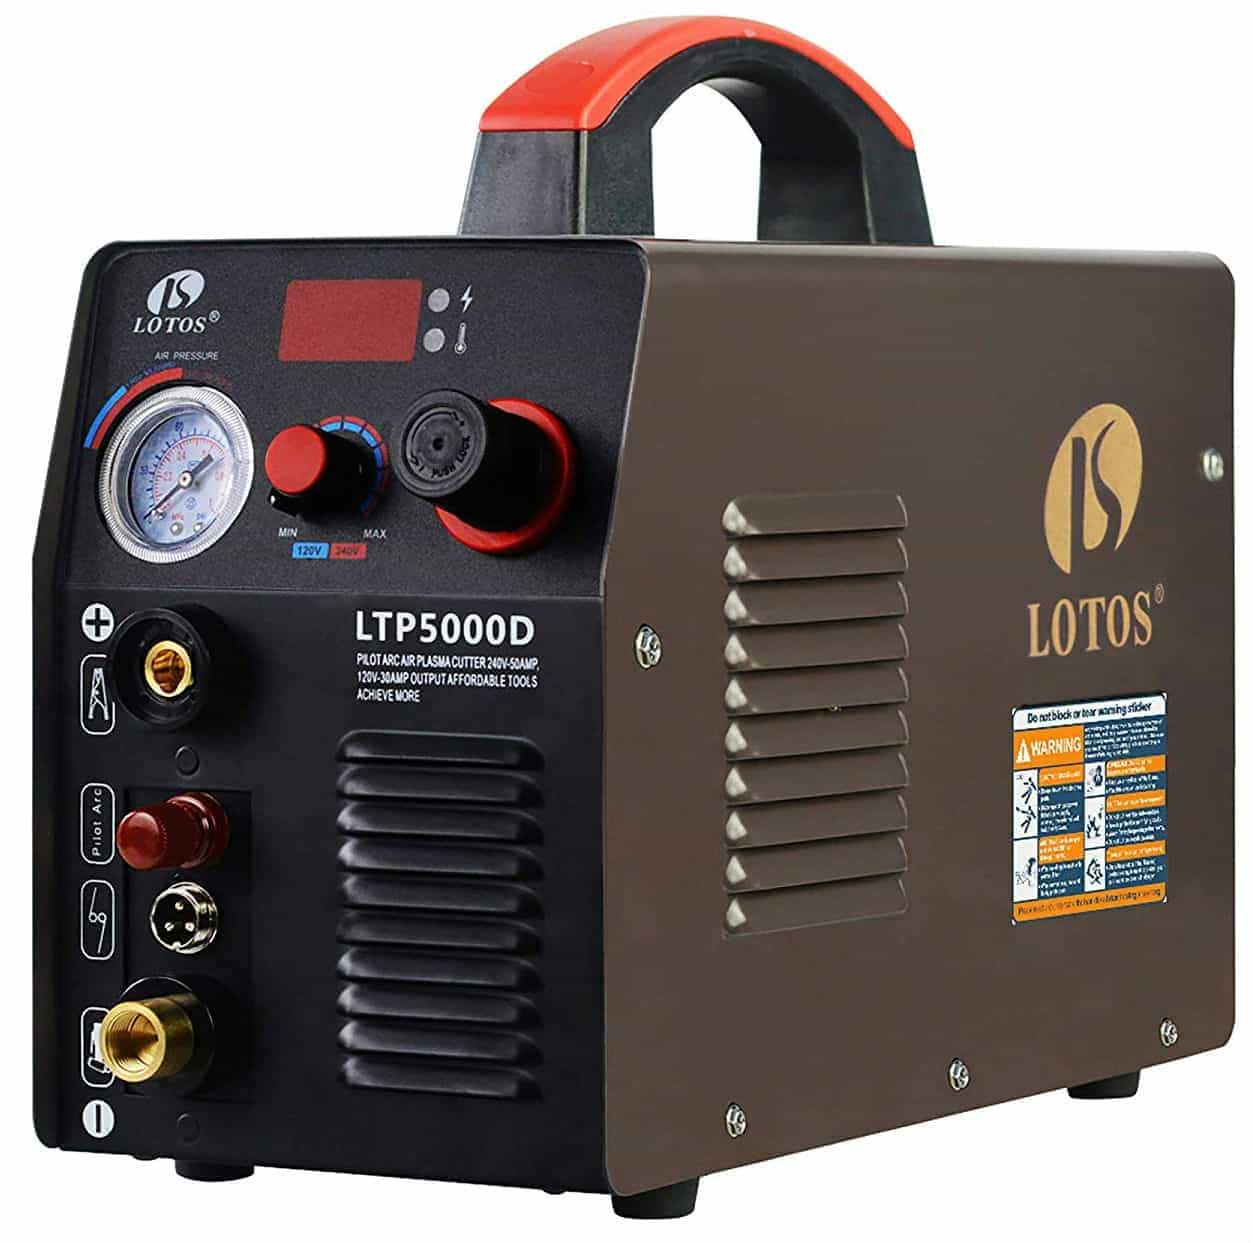 Lotos LTP5000D 50Amp Non-Touch Pilot Arc Plasma Cutter, Dual Voltage 110V and 220V